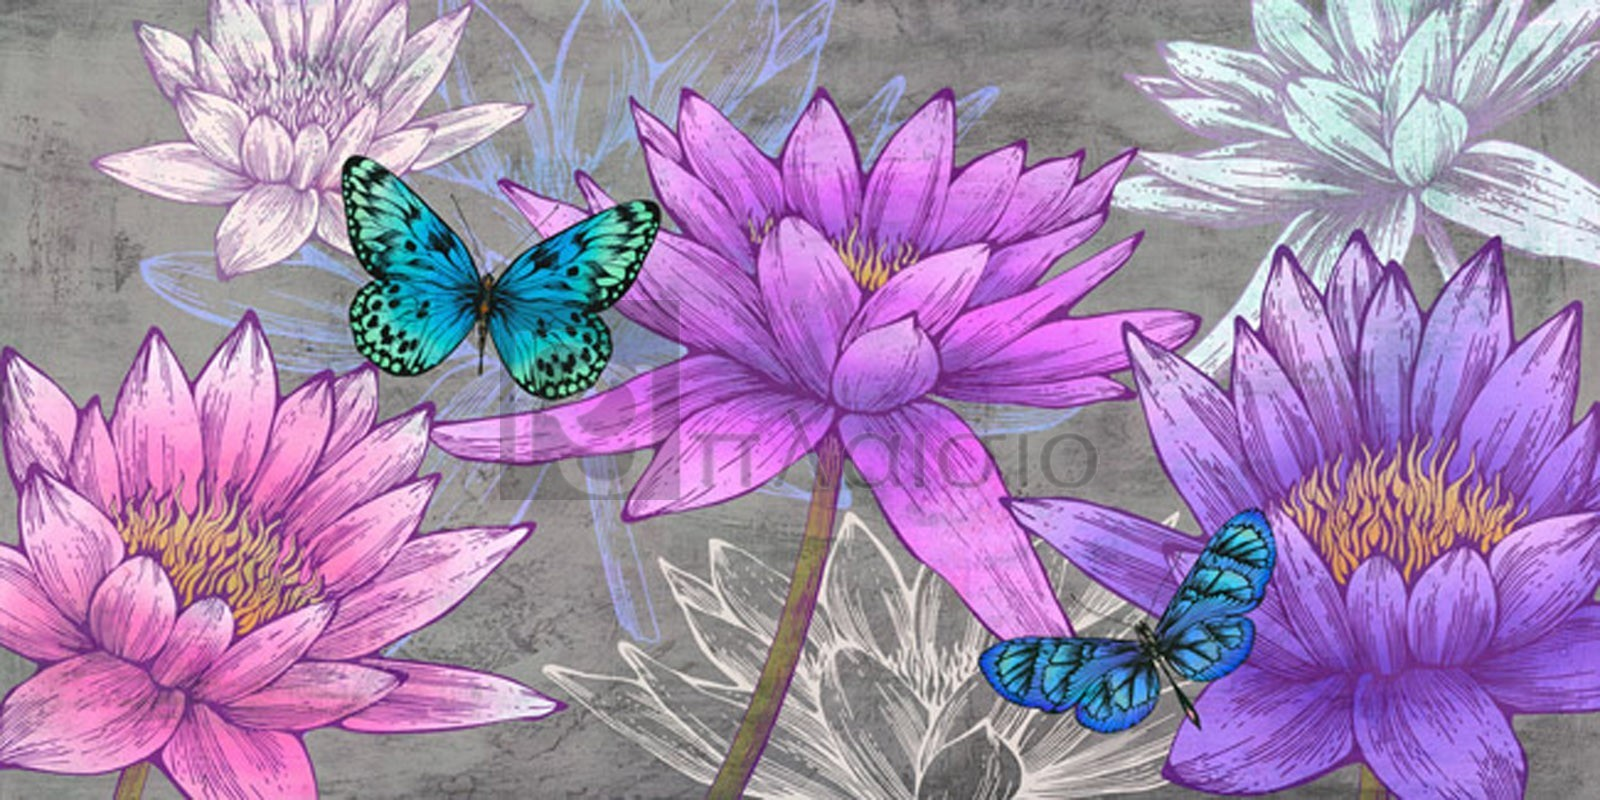 Eve C. Grant - Nympheas and Butterflies (Ash)